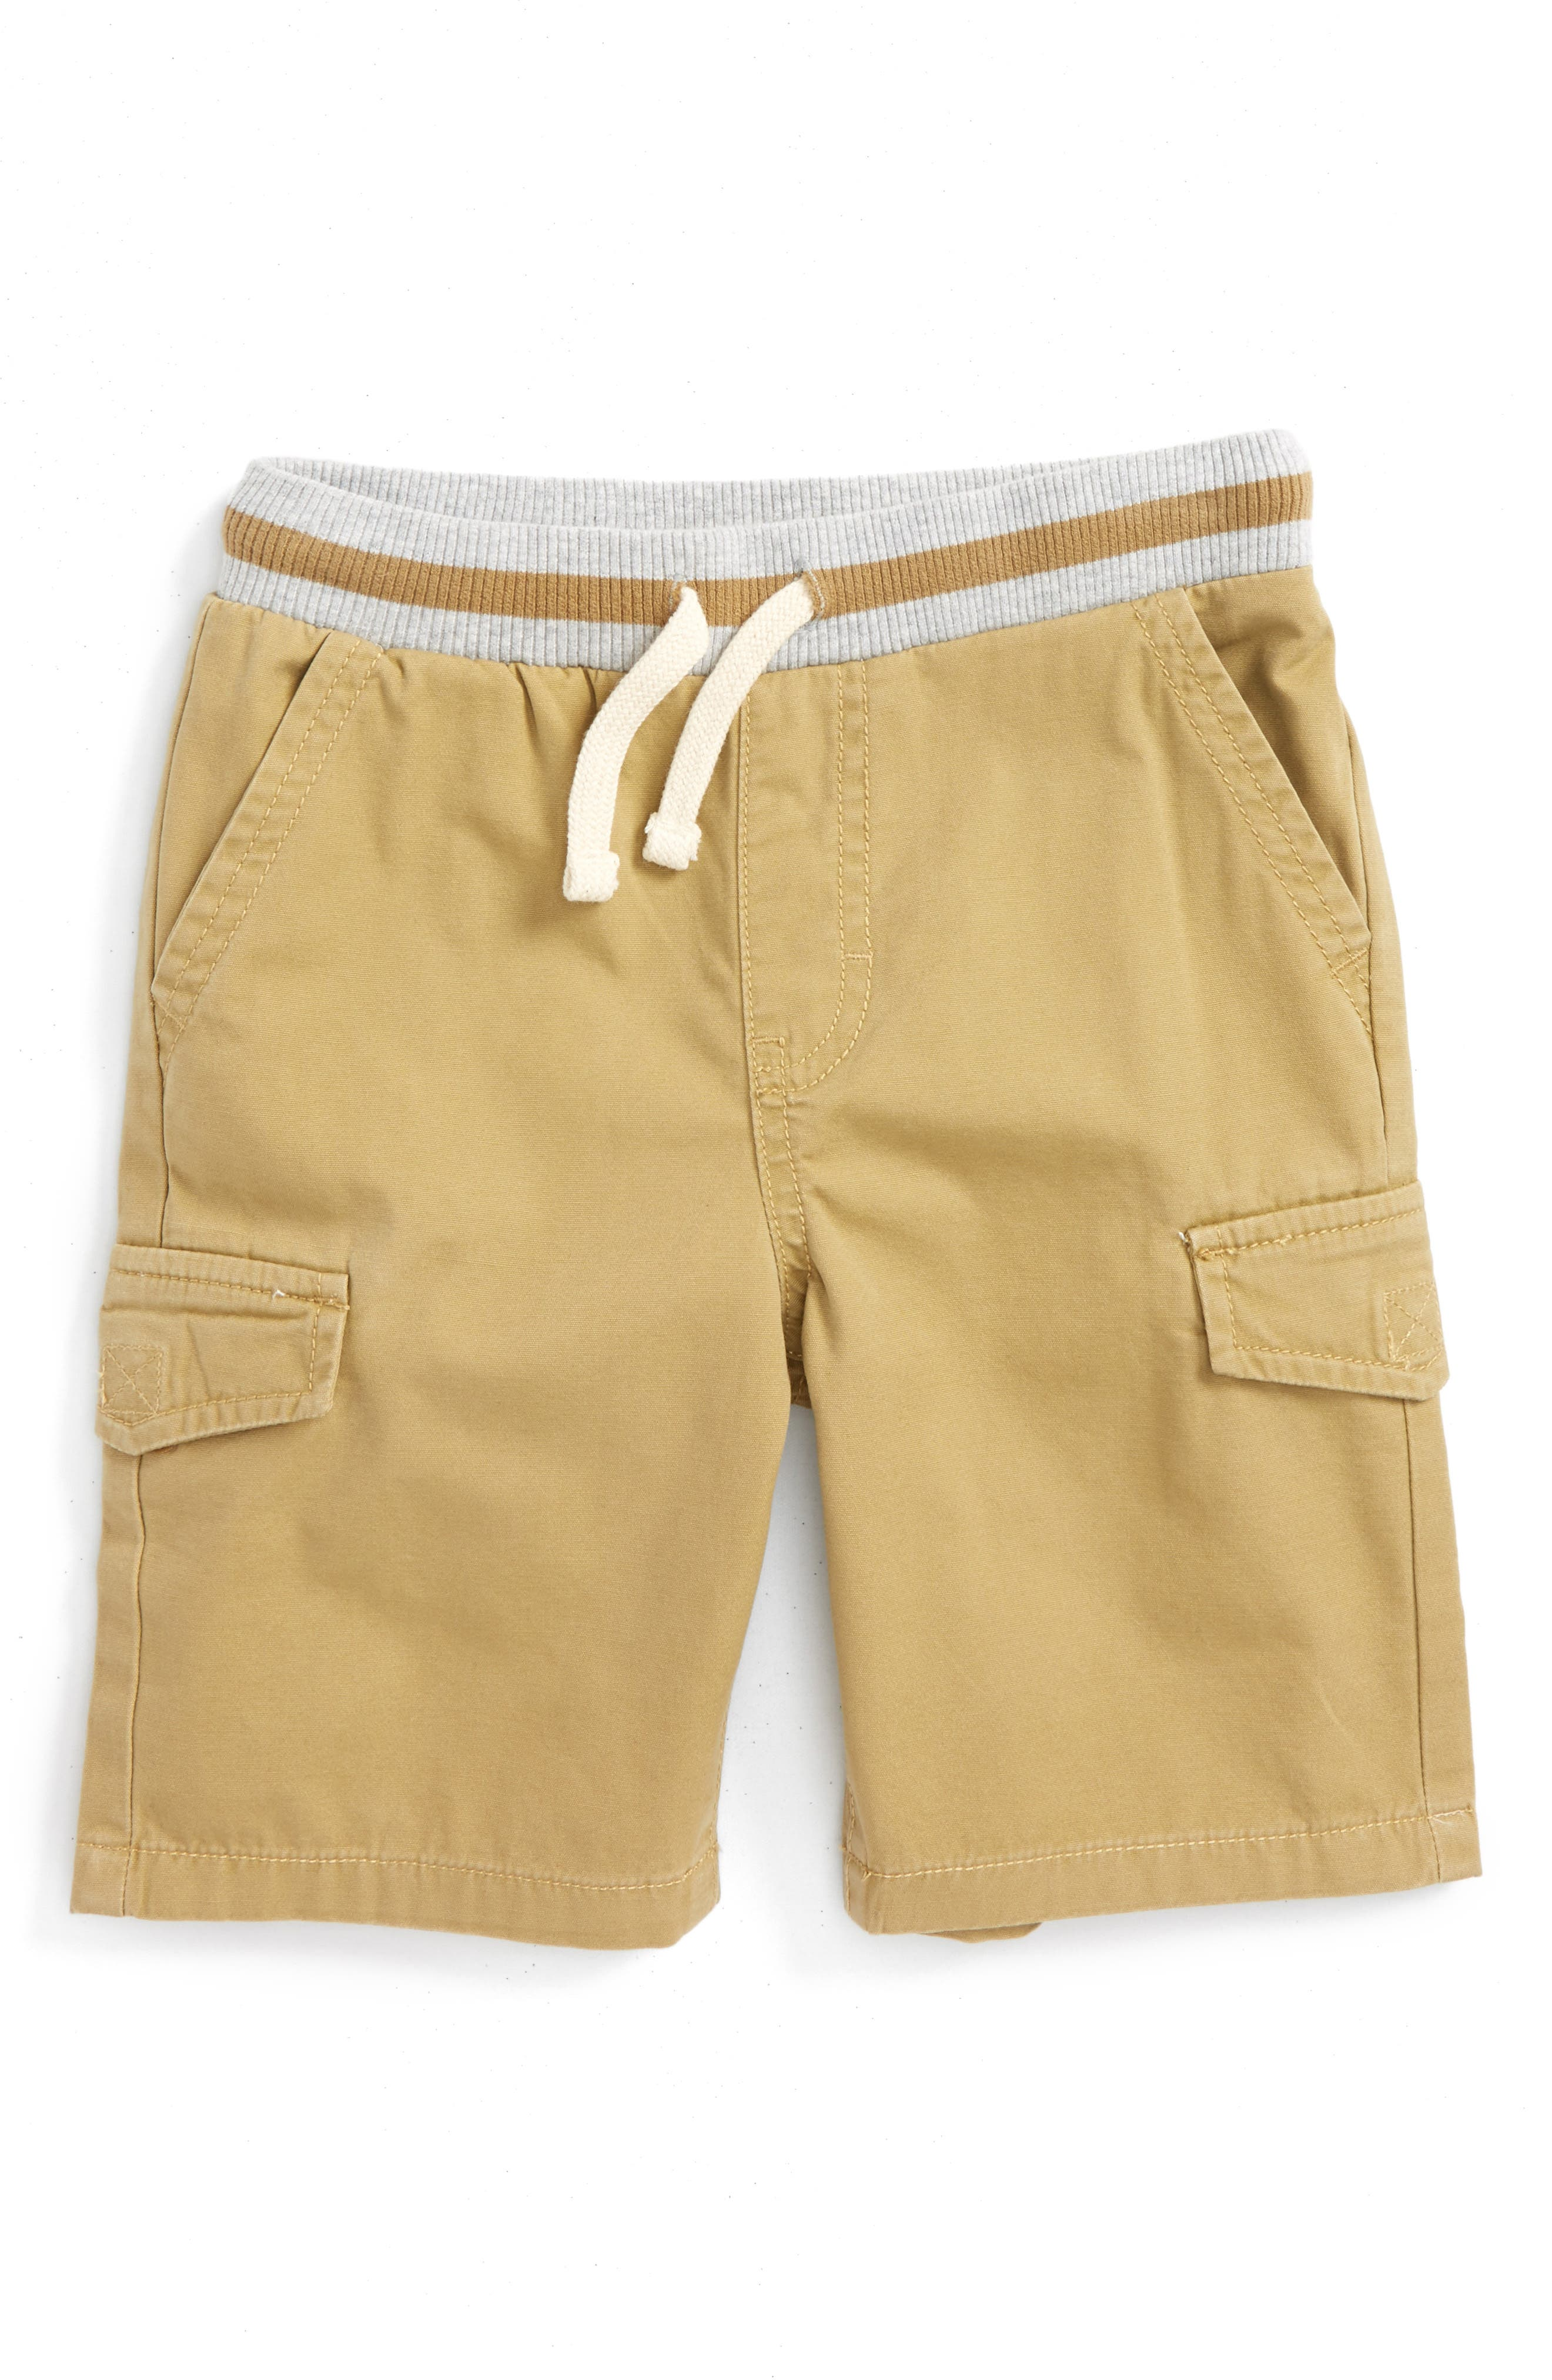 Alternate Image 1 Selected - Tucker + Tate Ribbed Waist Utility Shorts (Toddler Boys & Little Boys)